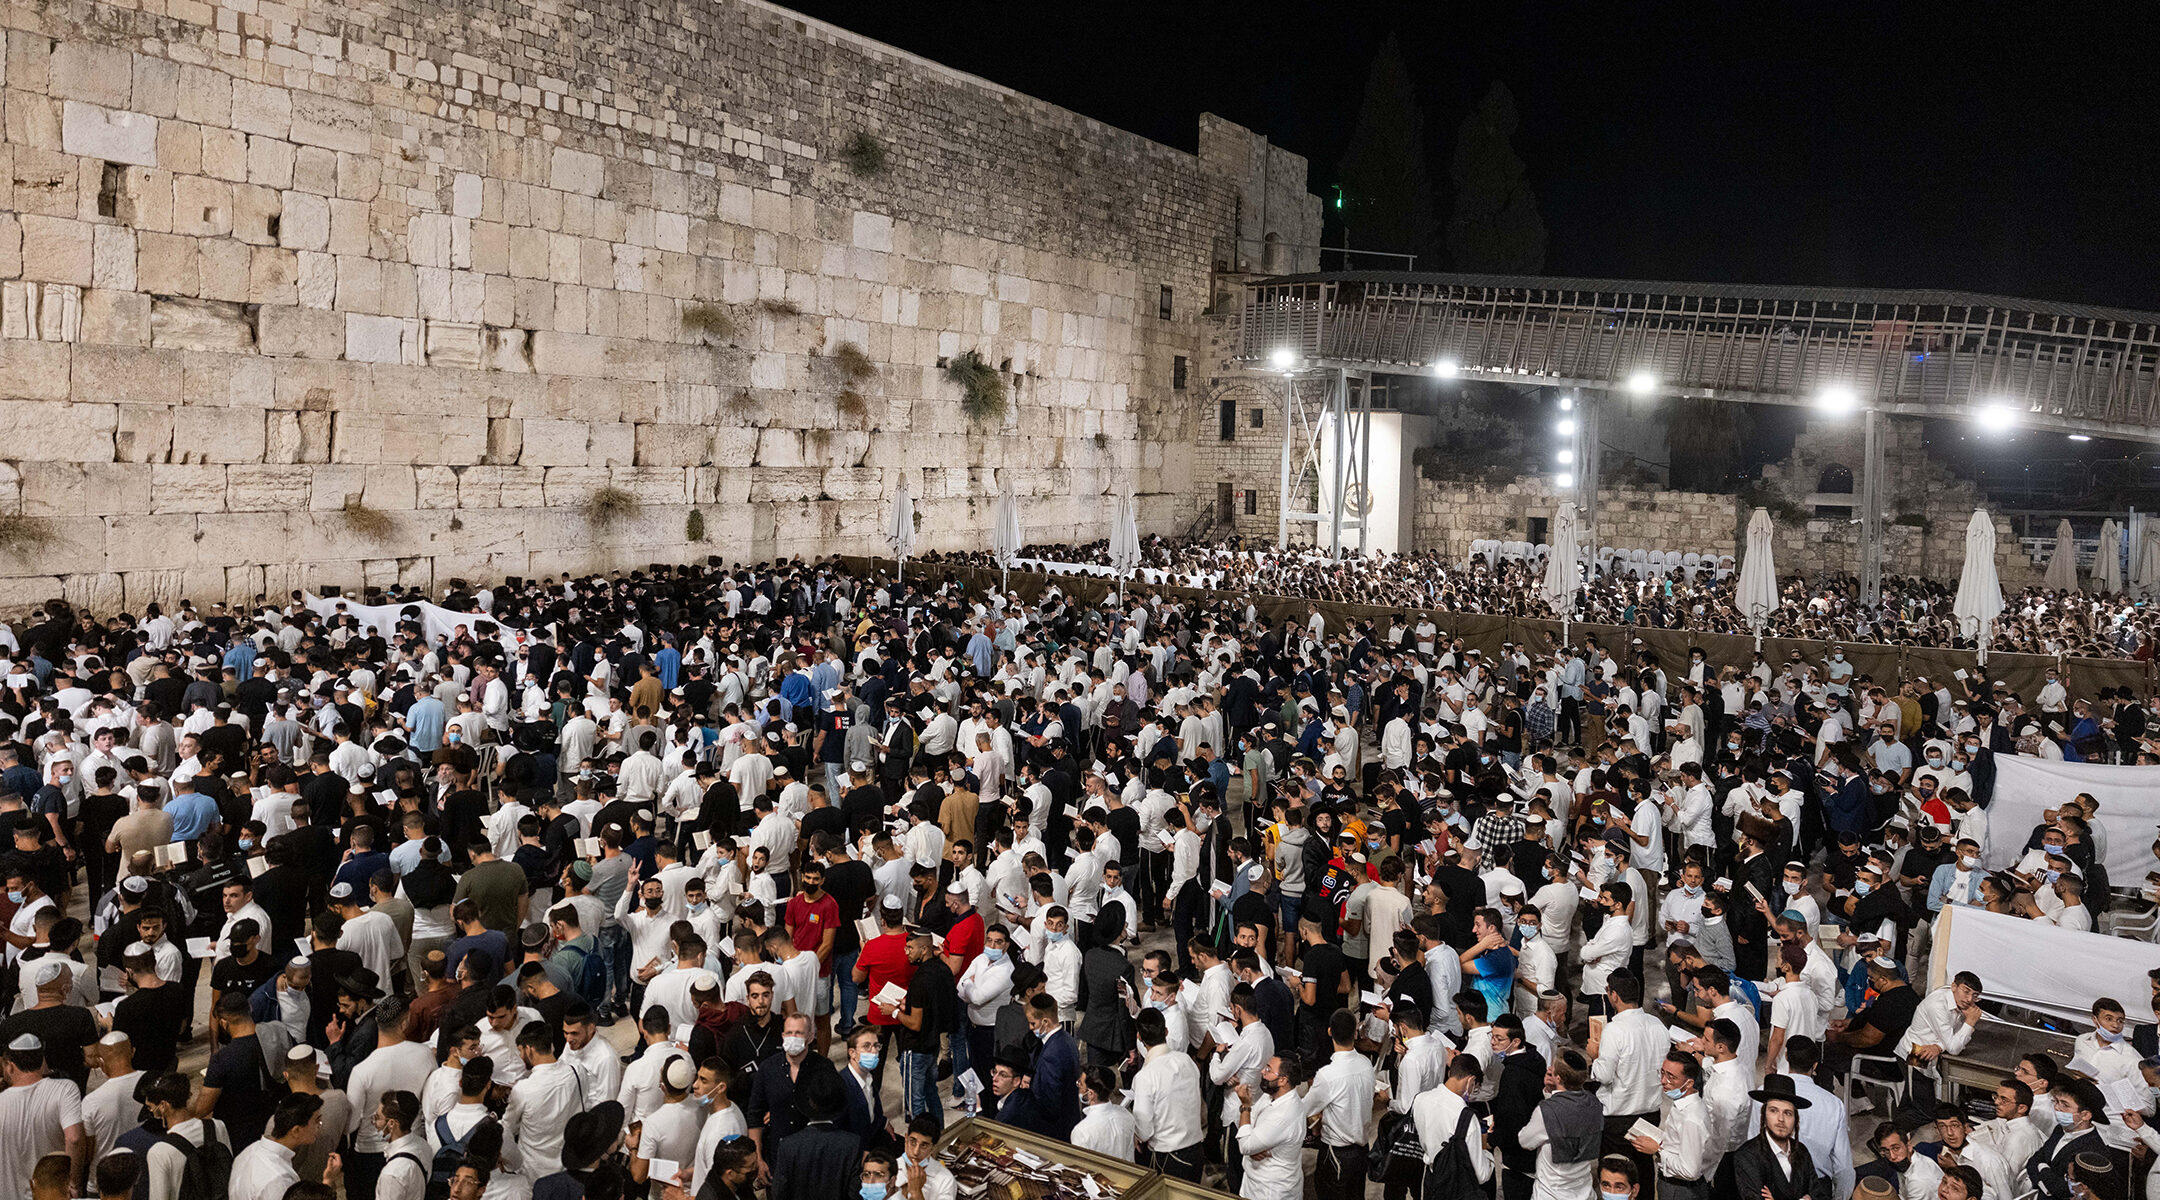 Jews pray for forgivness, or selichot, at the Western Wall in the Old City of Jerusalem on September 5, 2021 (Yonatan Sindel/Flash90)